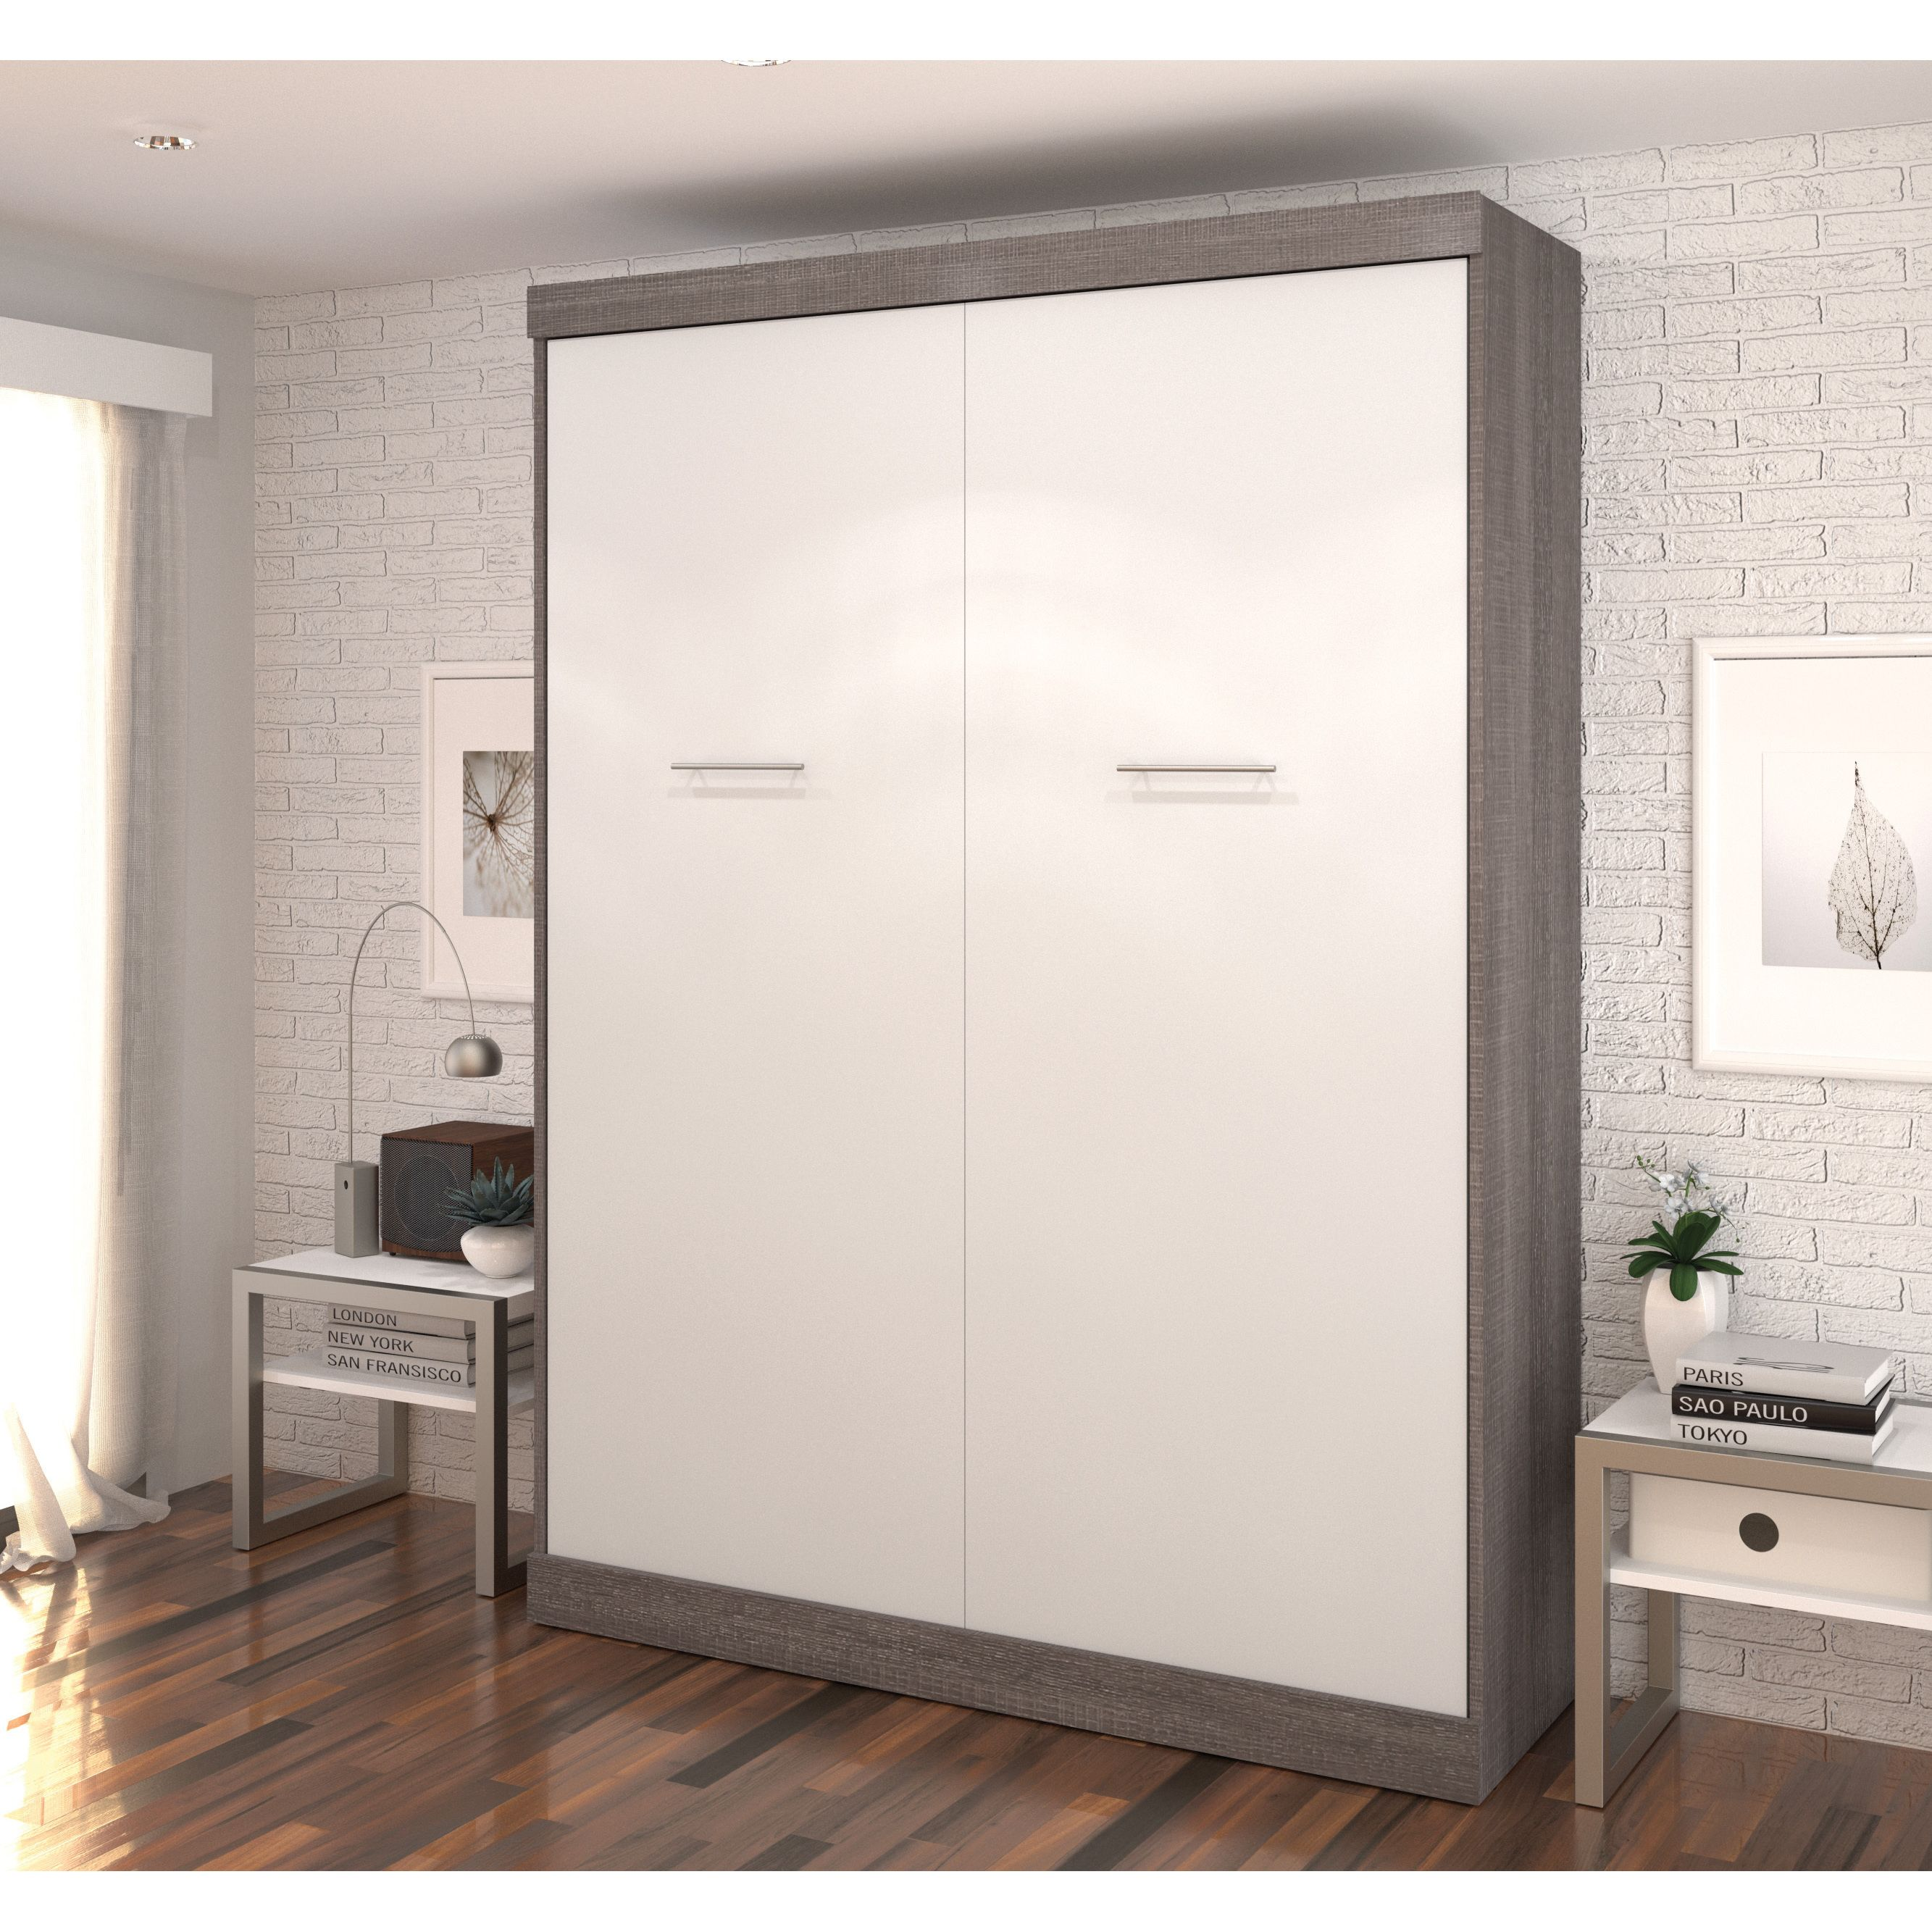 Nebula Collection by Bestar is the ideal solution for